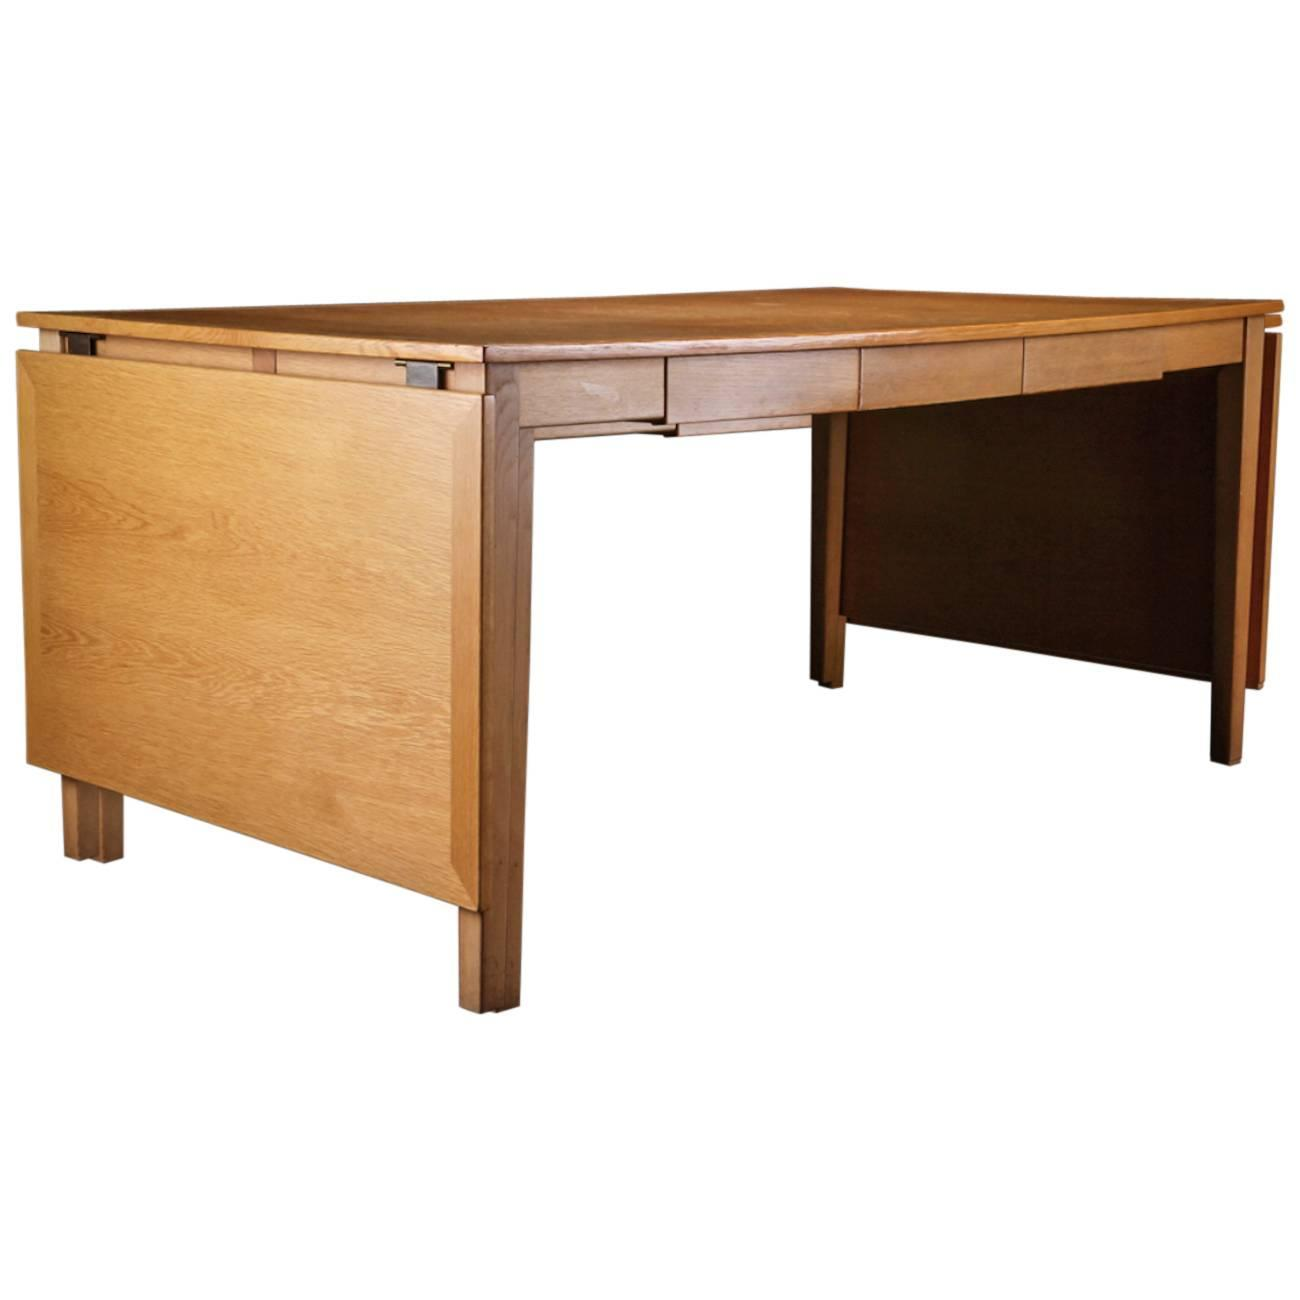 Danish Oak Desk Or Dining Table With Drawers And Leaves At 1stdibs